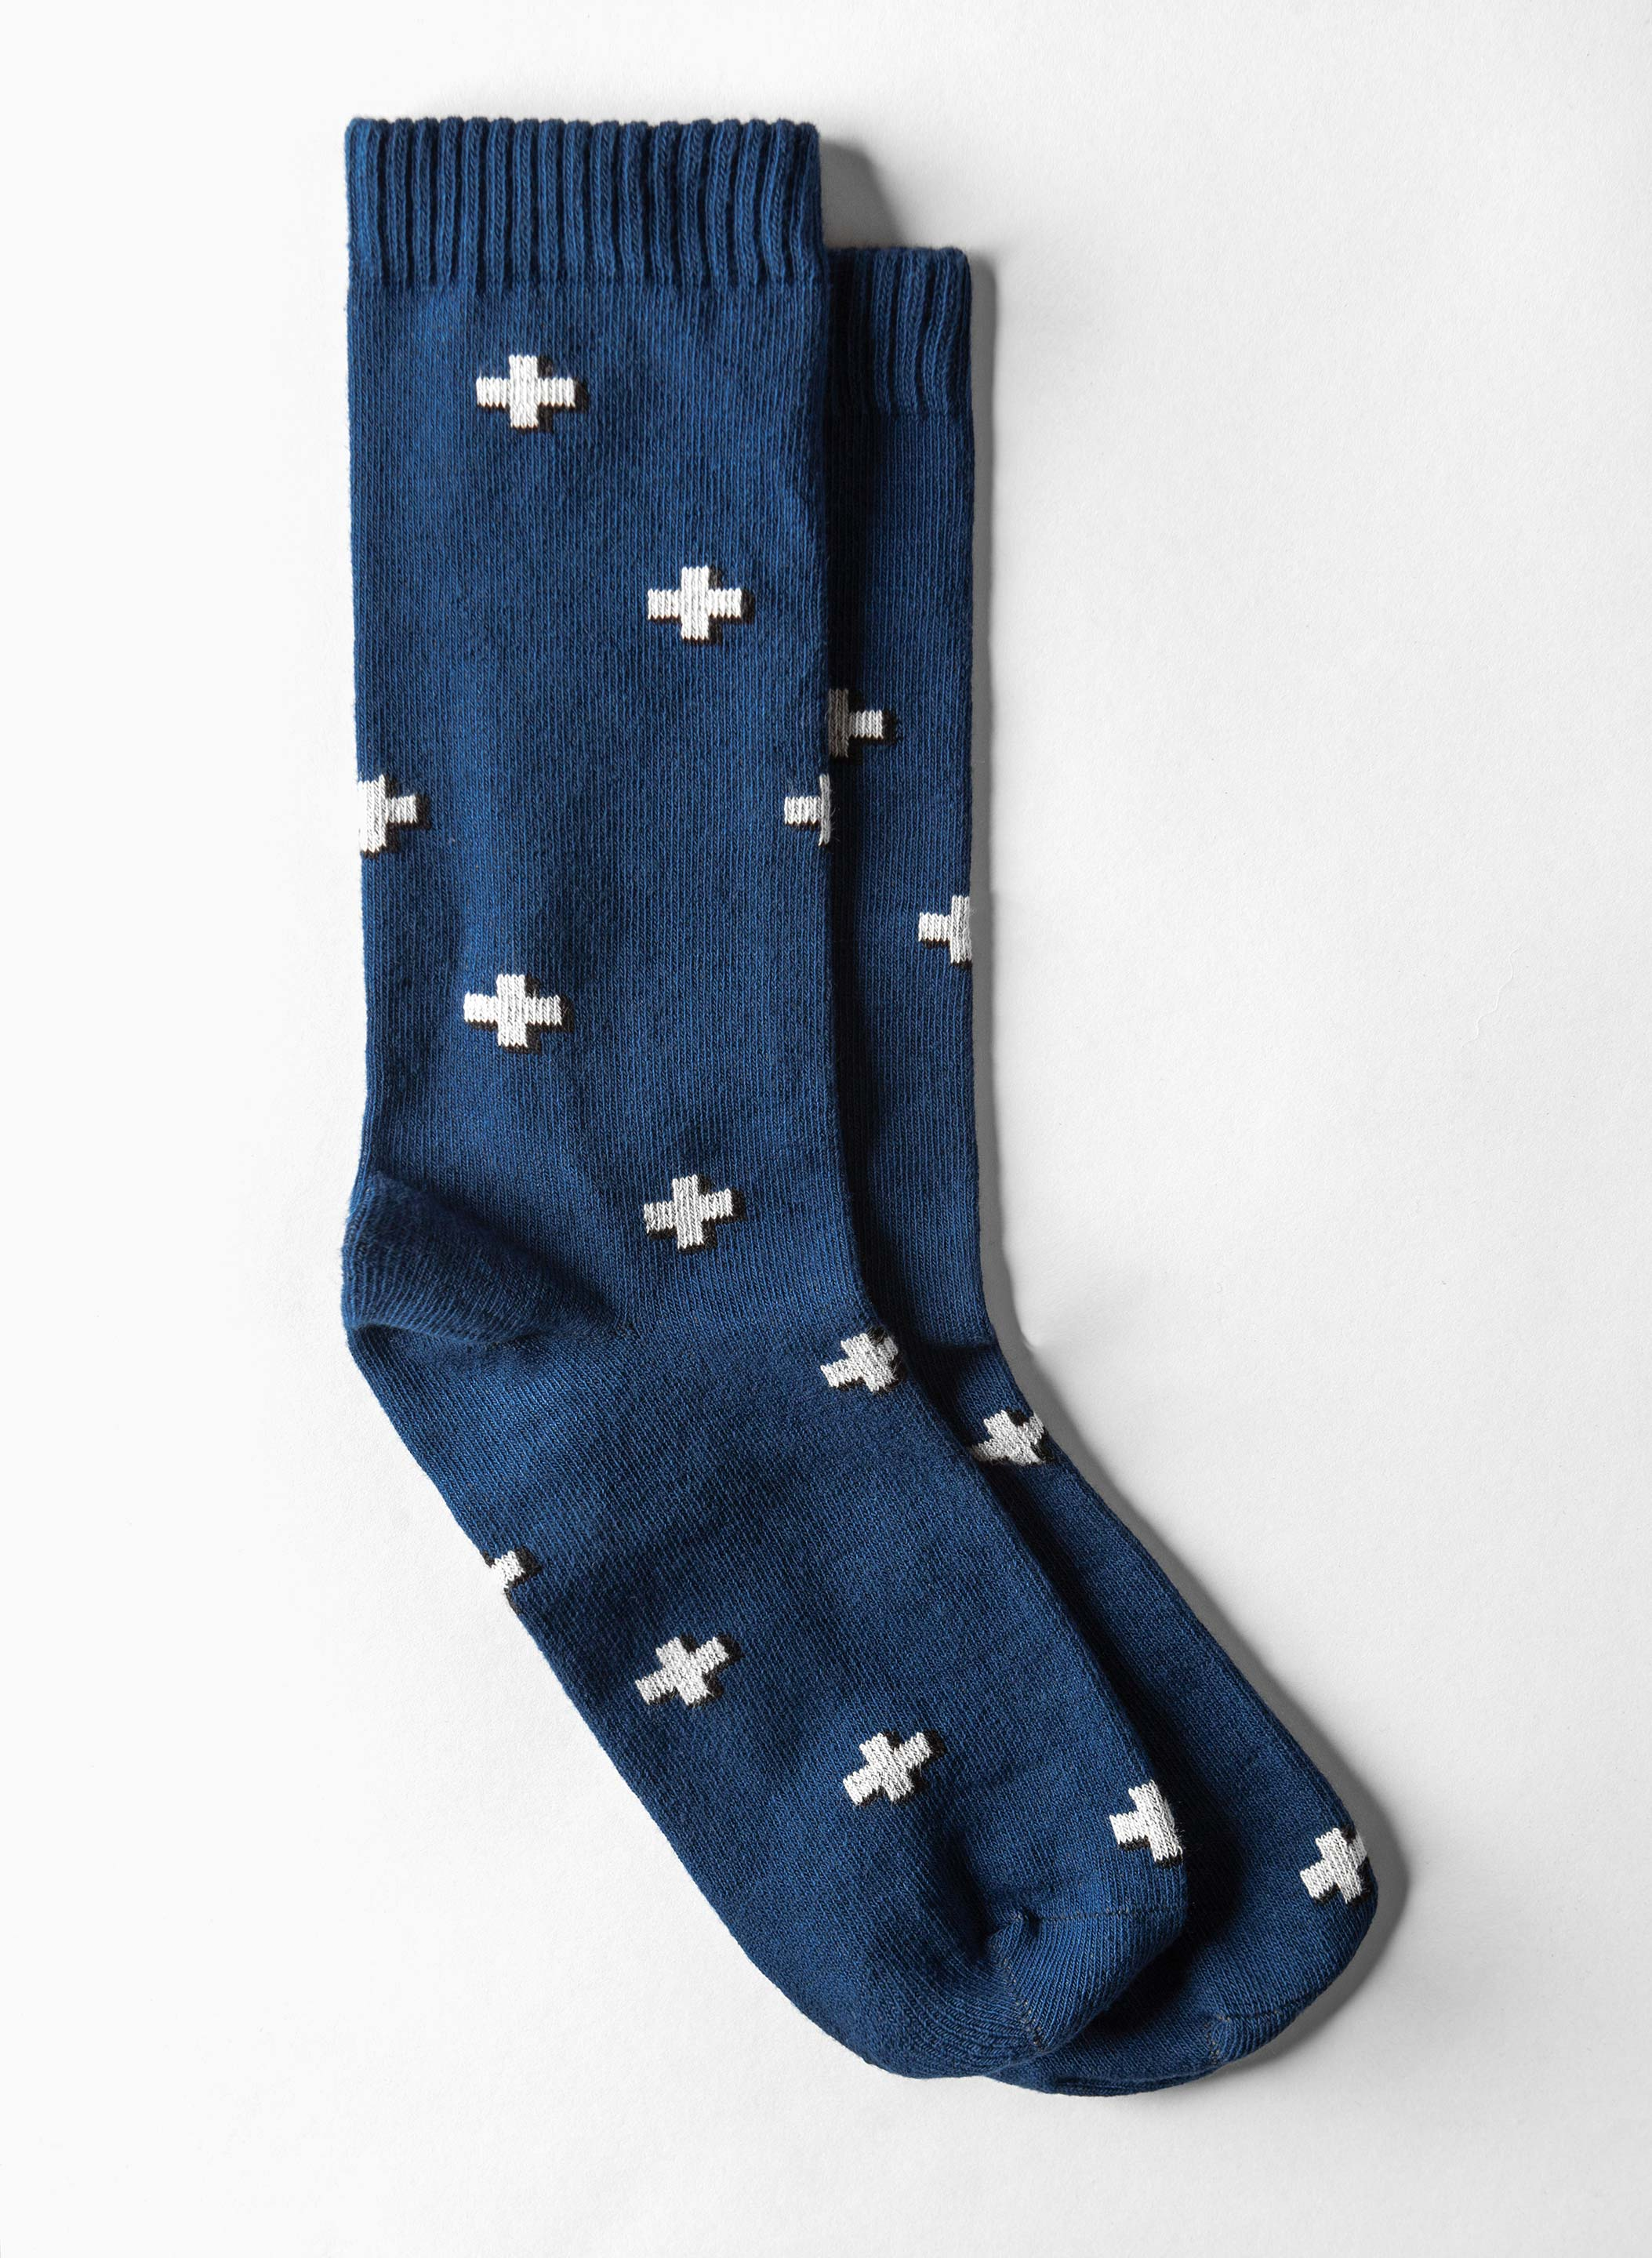 imogene + willie - plus sock in indigo